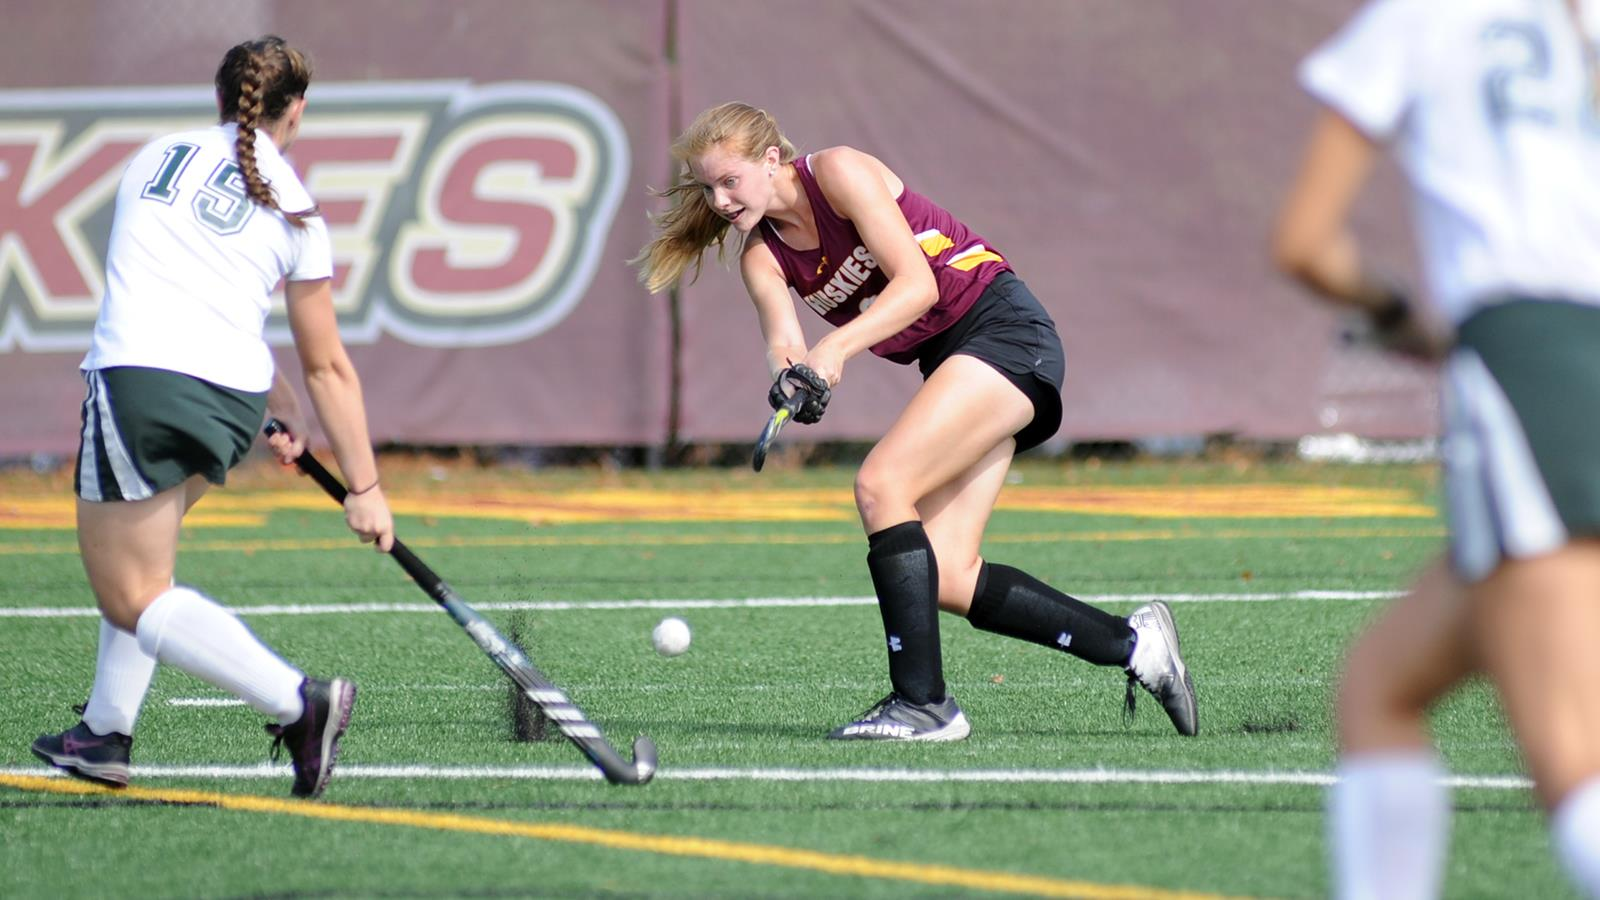 Field Hockey To Hold High School Development Clinic In May